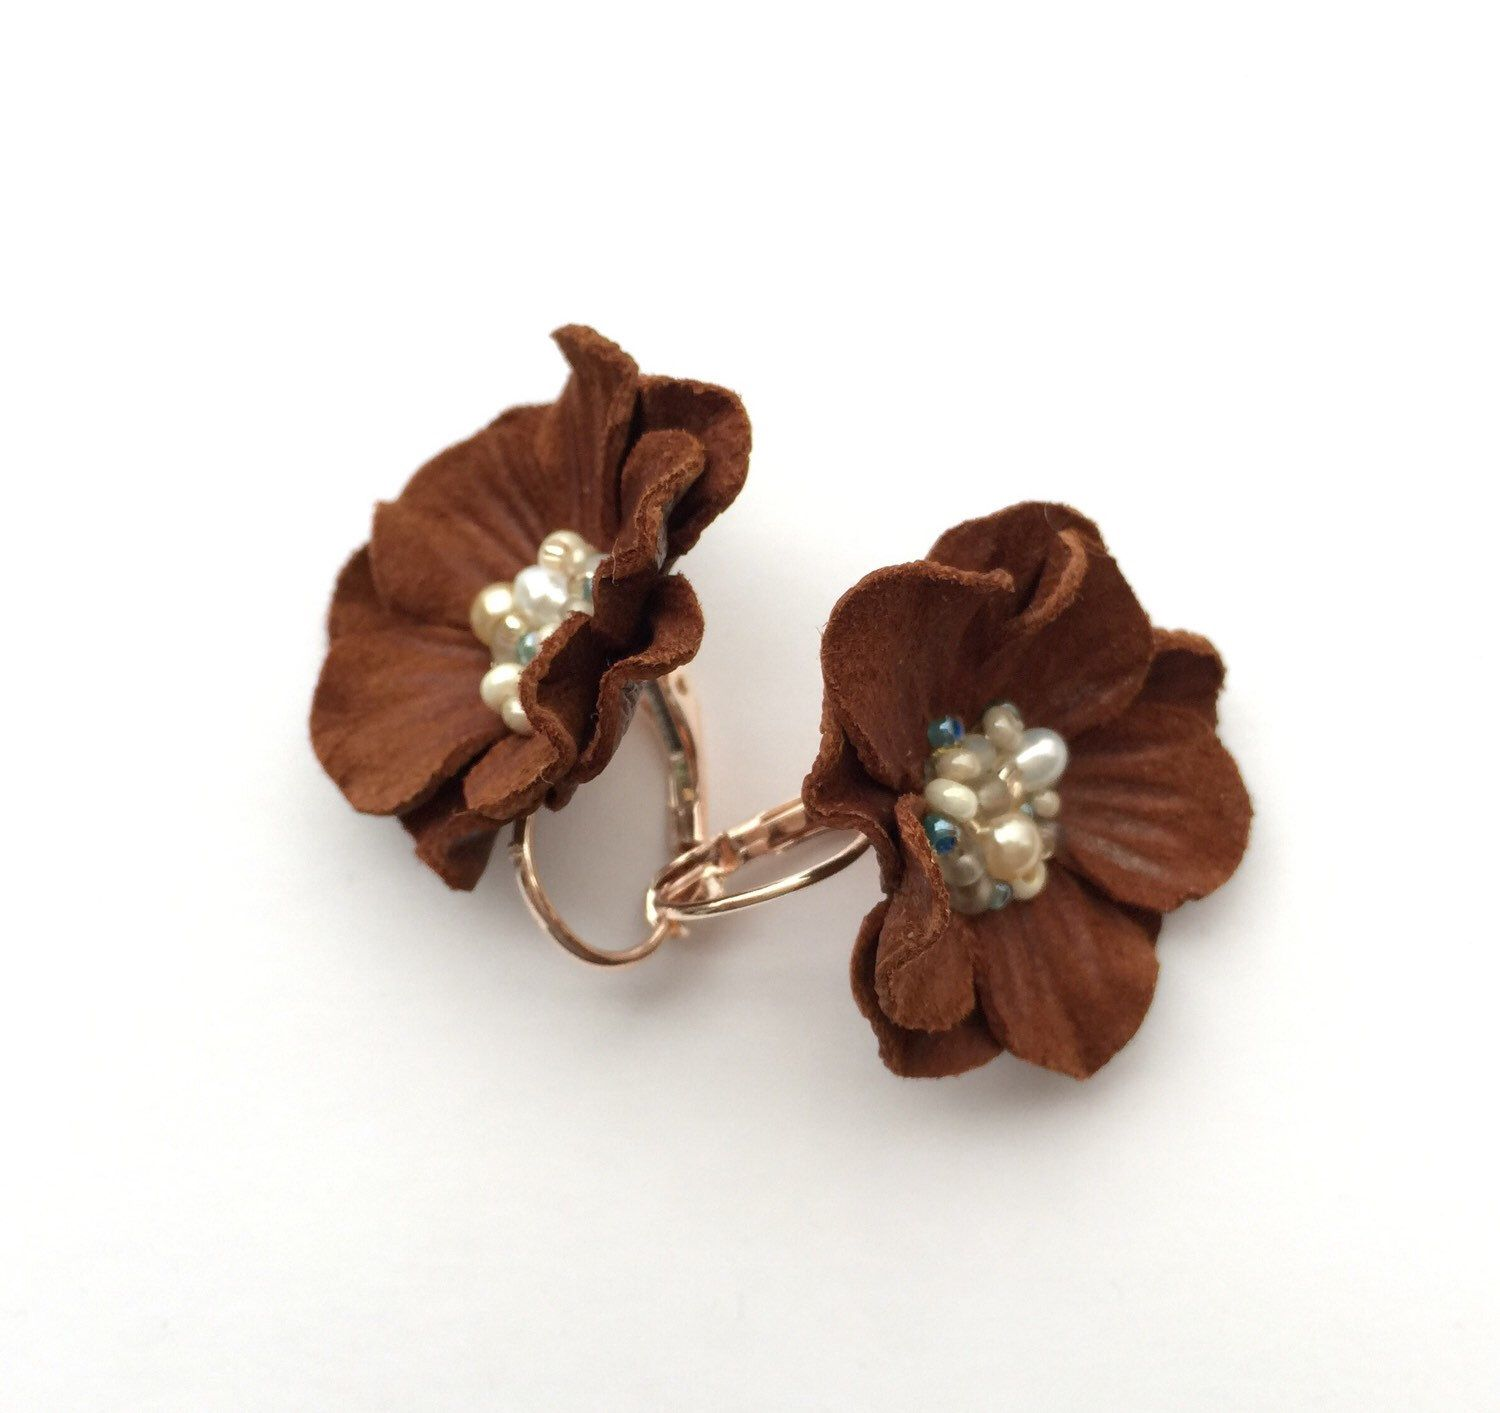 Chocolate Brown Leather Flower Earrings, Flower Earring, Bridesmaids Gift,  Vintage Earrings, Leather Earrings, Mothers Day Gift